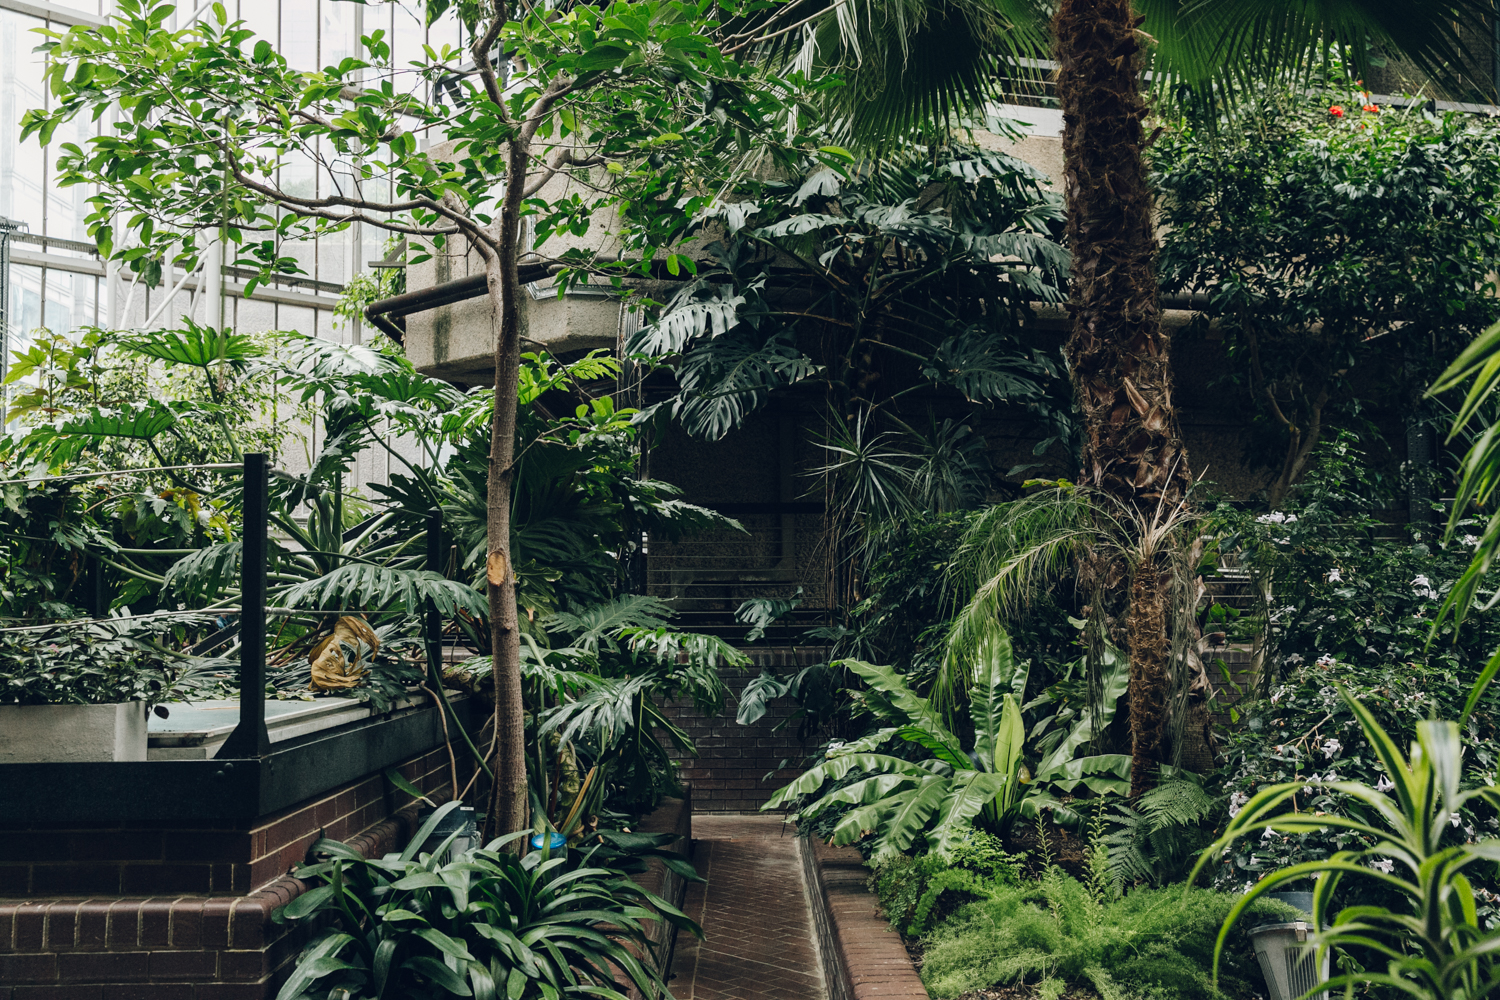 Haarkon Barbican Conservatory Greenhouse Glasshouse jungle plants green london travel concrete architecture